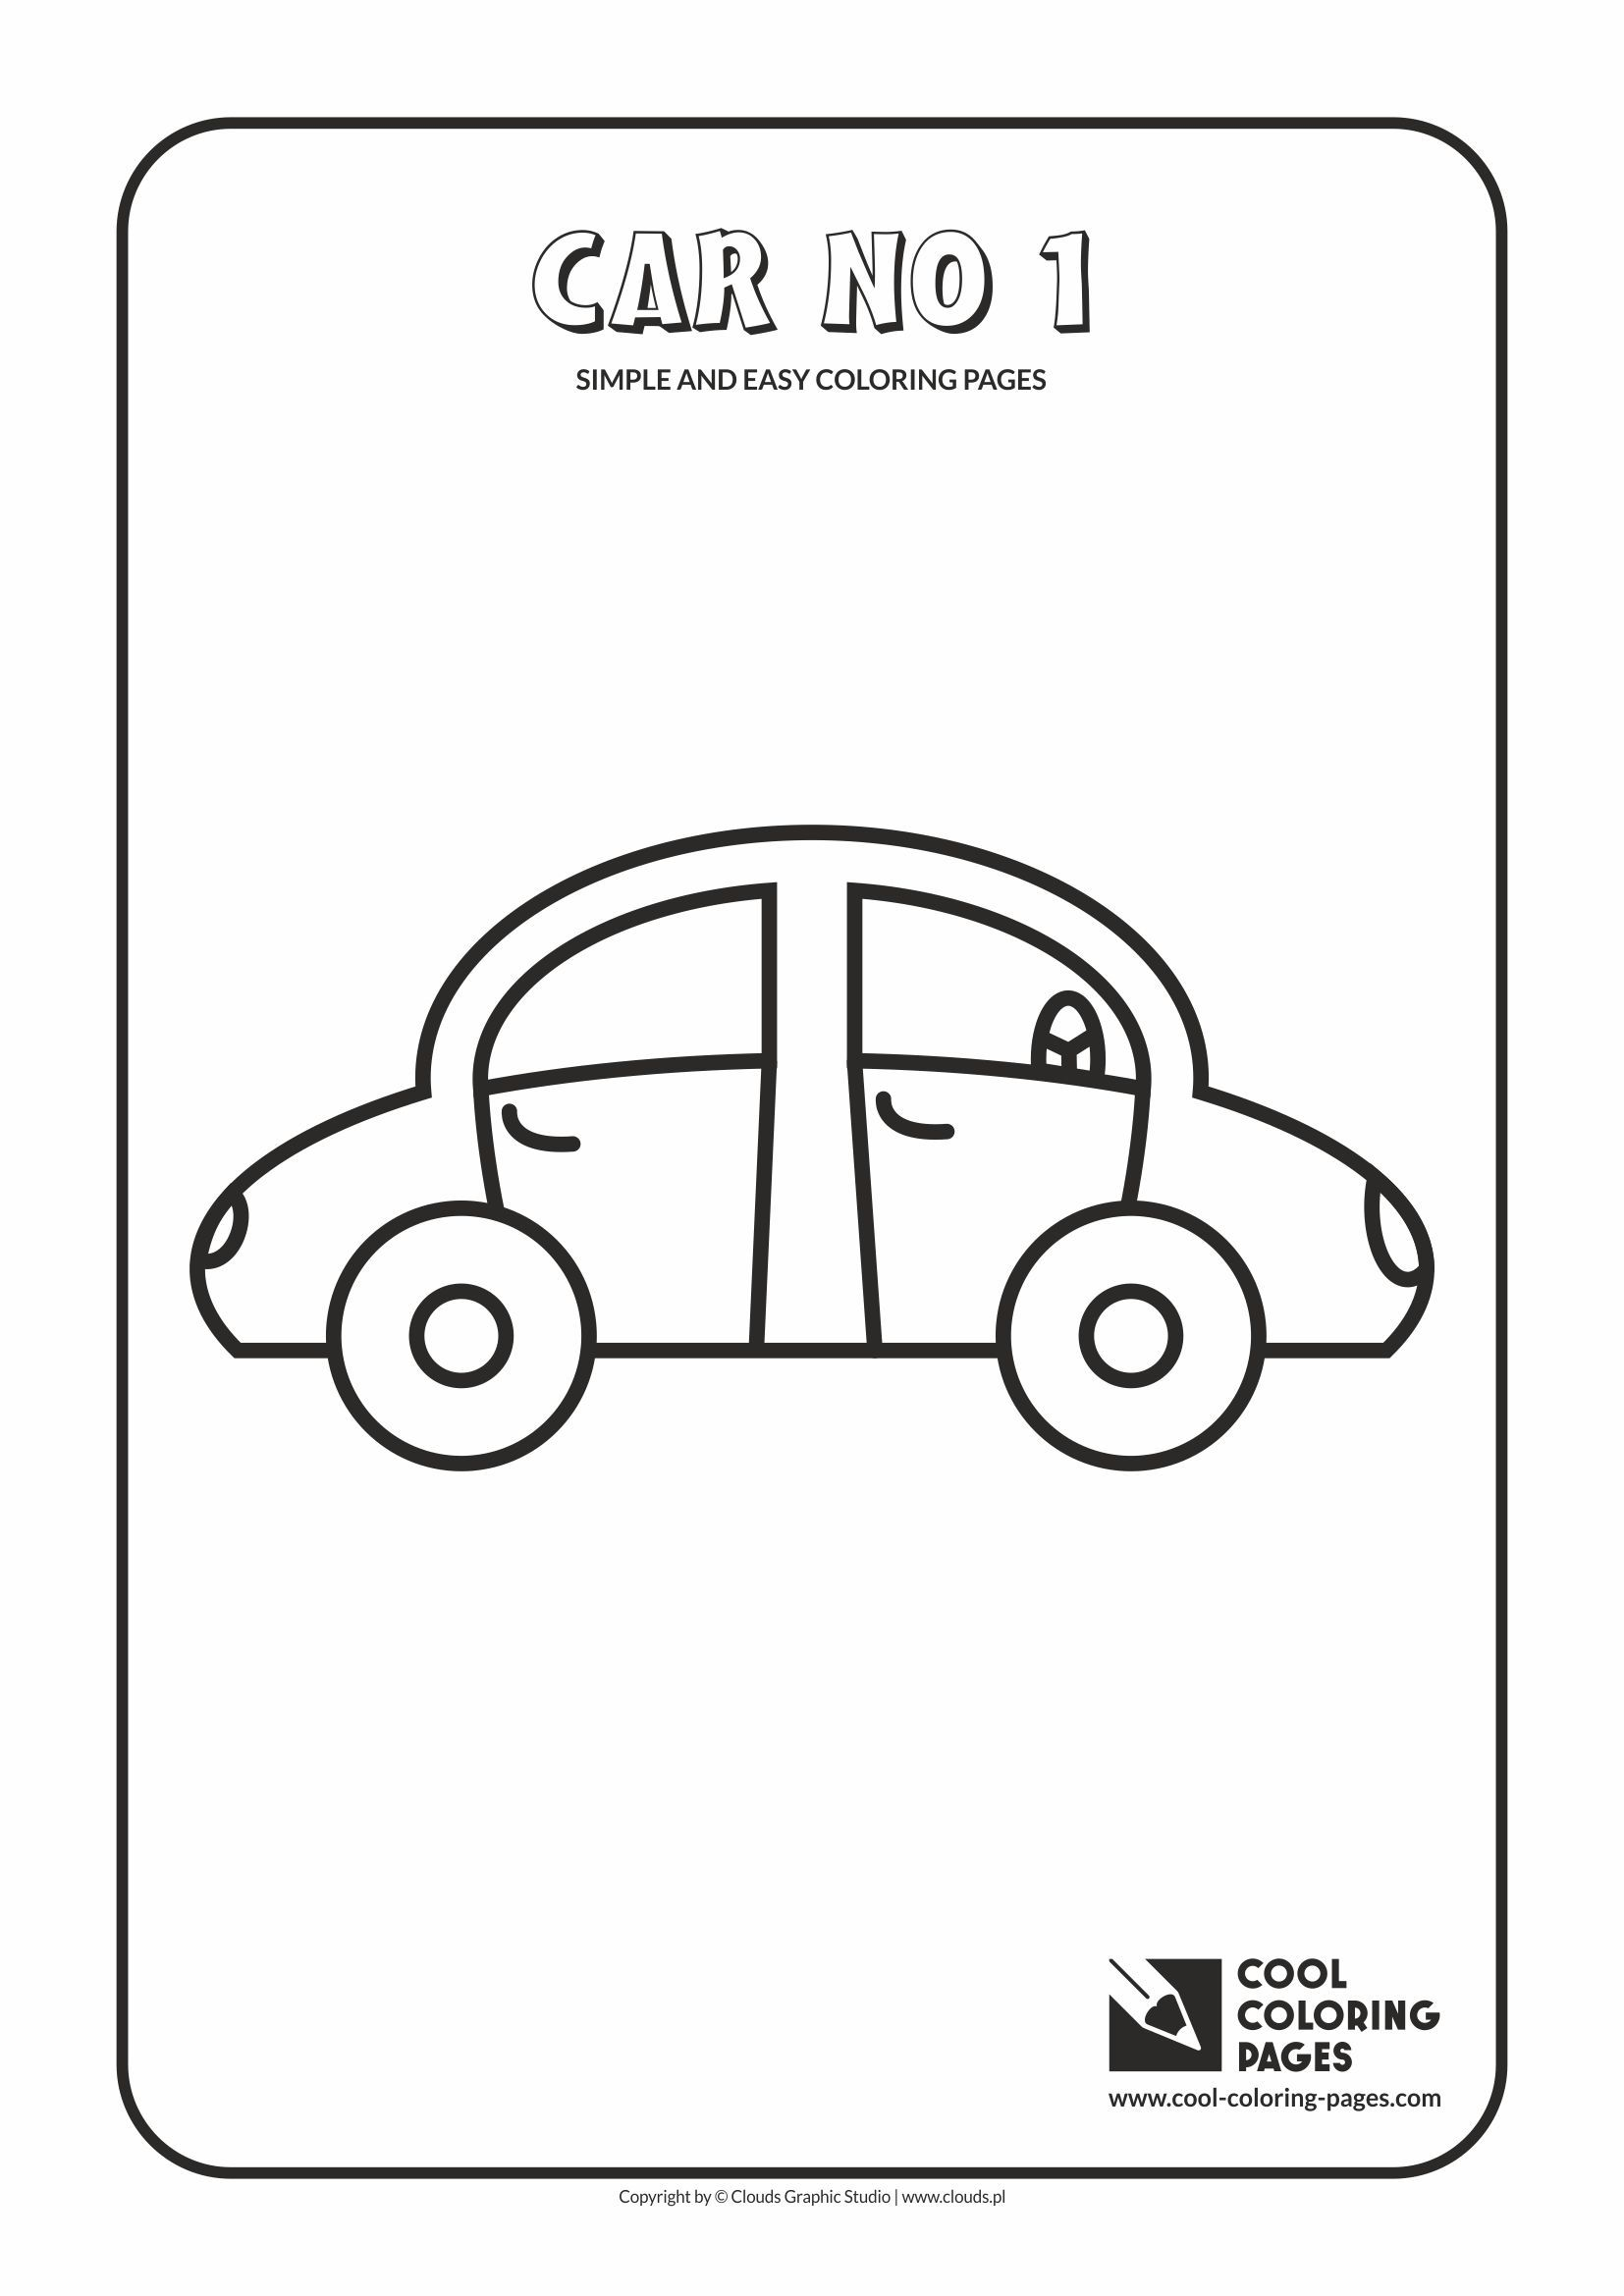 Simple and easy coloring pages for toddlers - Car no 1 | Simple and ...